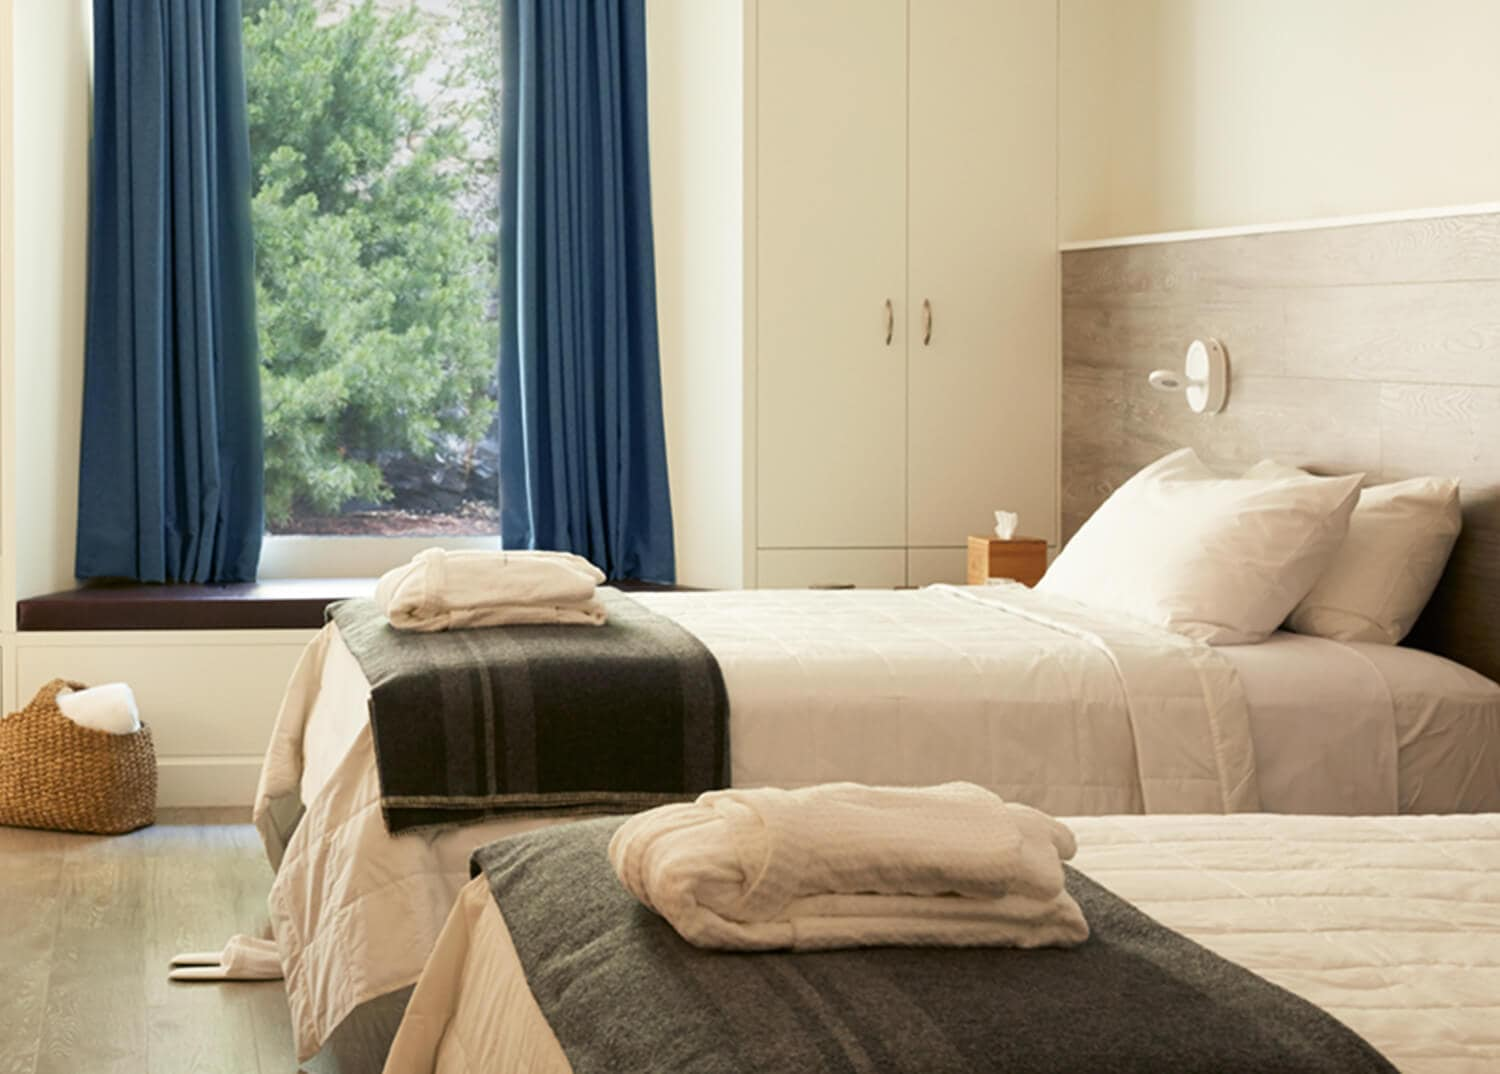 Modern, clean bedroom with two twin beds. Detox program accommodations at Mountainside Treatment Center in Canaan, CT.